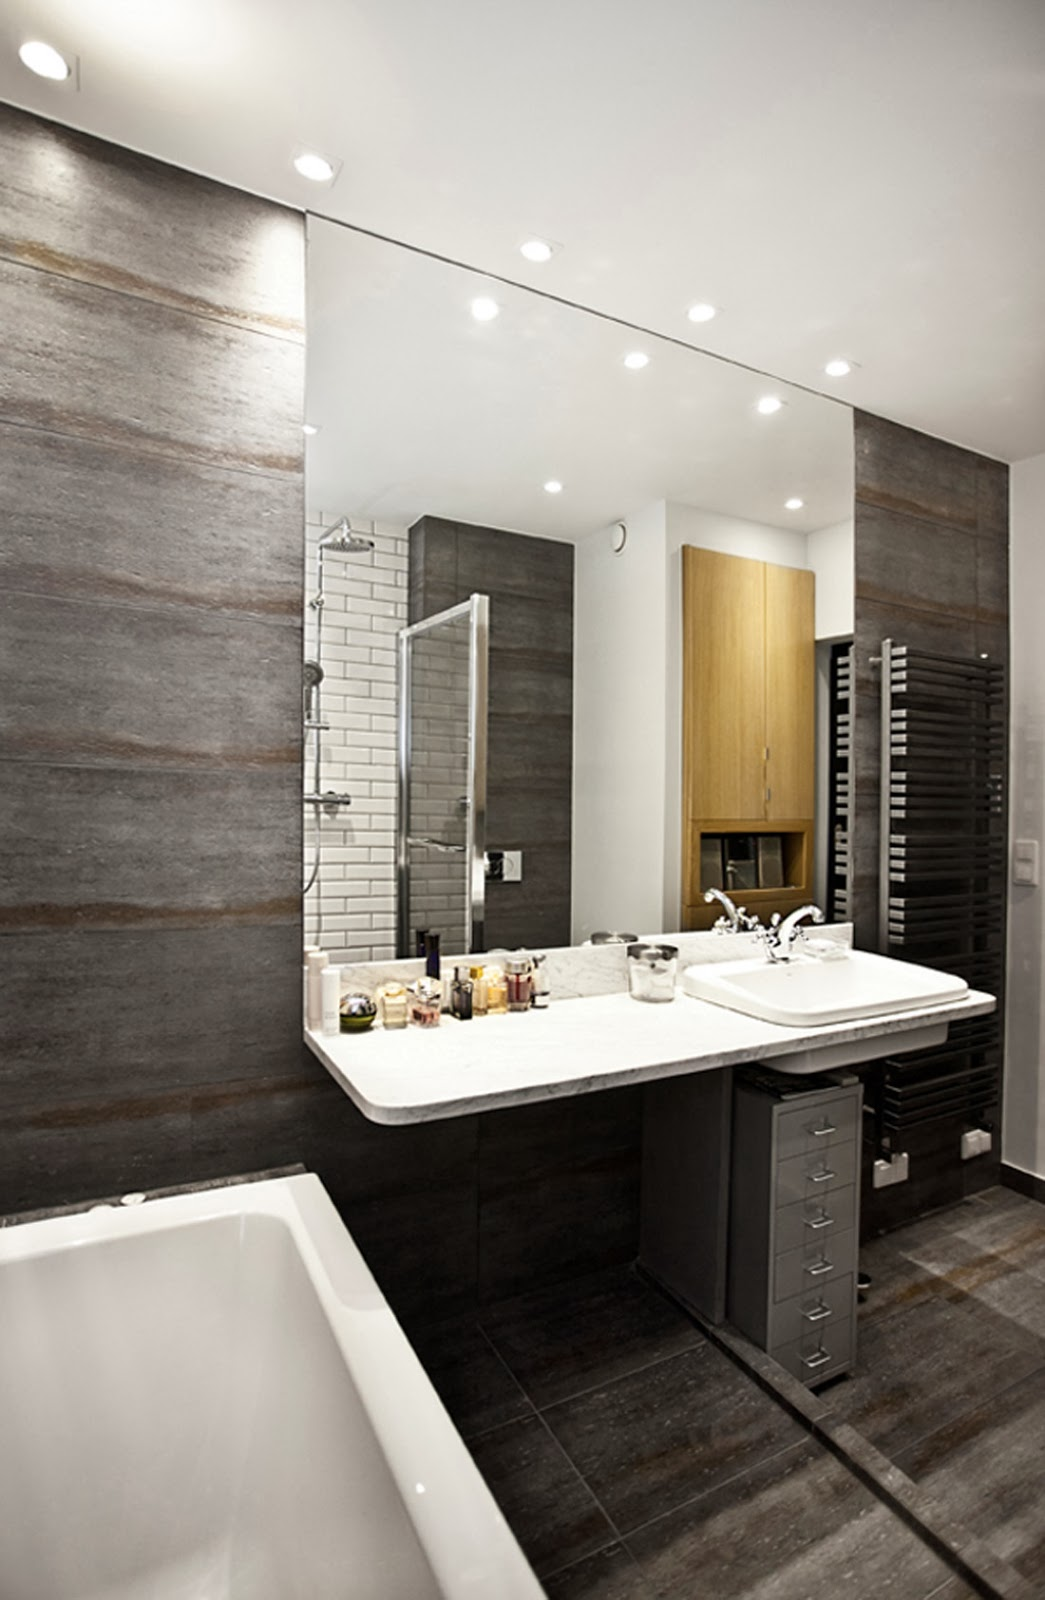 Loft bathroom ideas bathroom showers for Bathroom tips